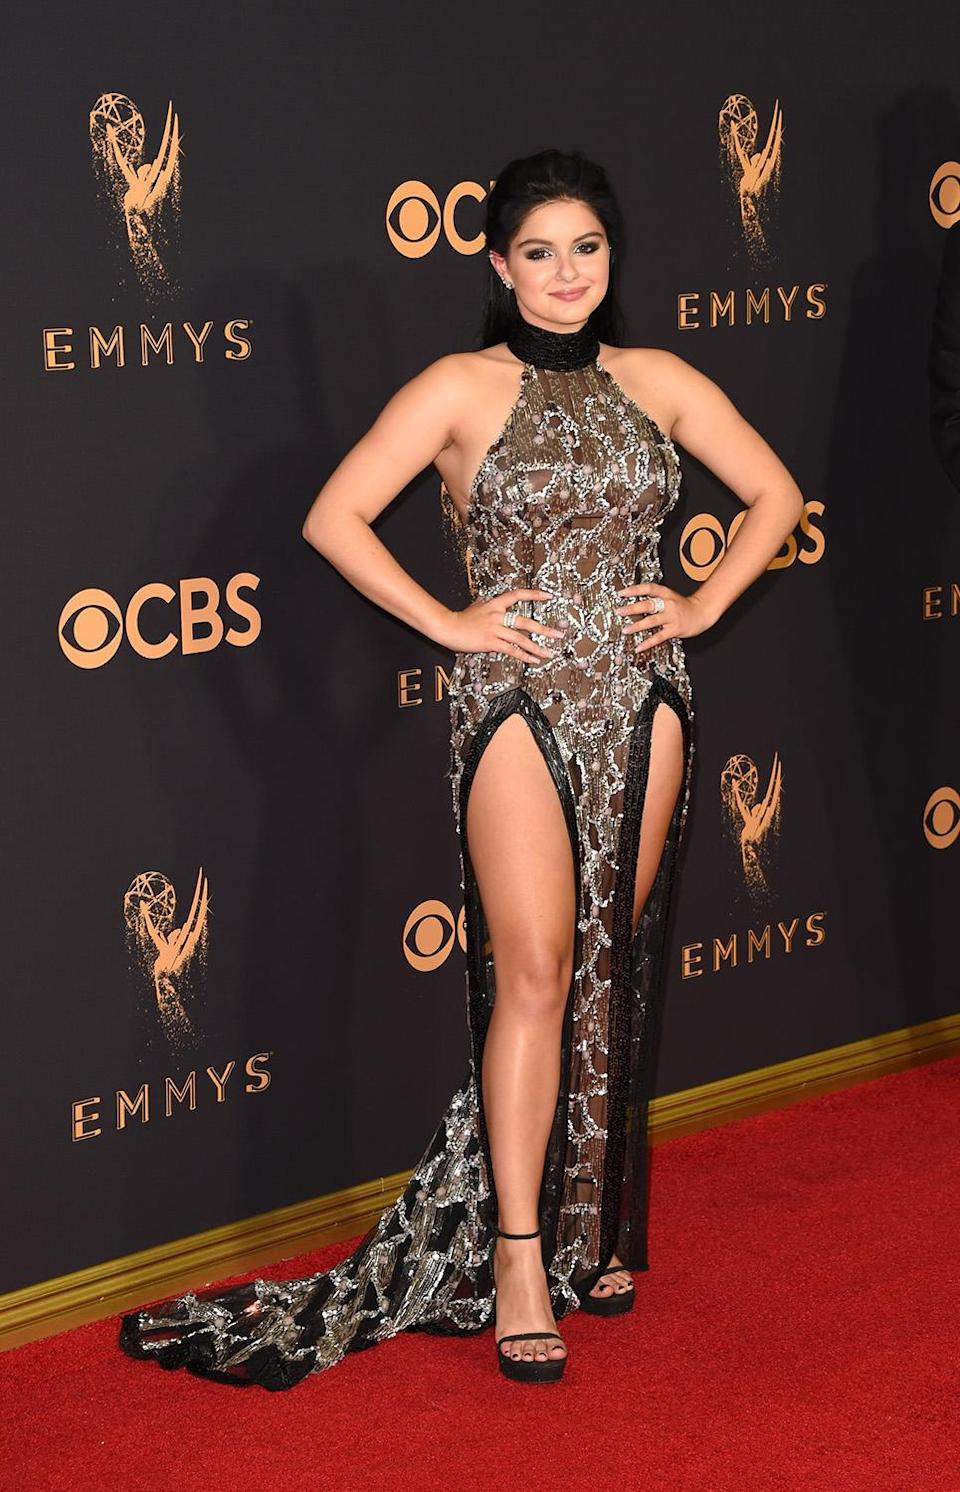 <p>Ariel Winter attends the 69th Annual Primetime Emmy Awards at Microsoft Theater on September 17, 2017 in Los Angeles, California. (Photo by J. Merritt/Getty Images) </p>